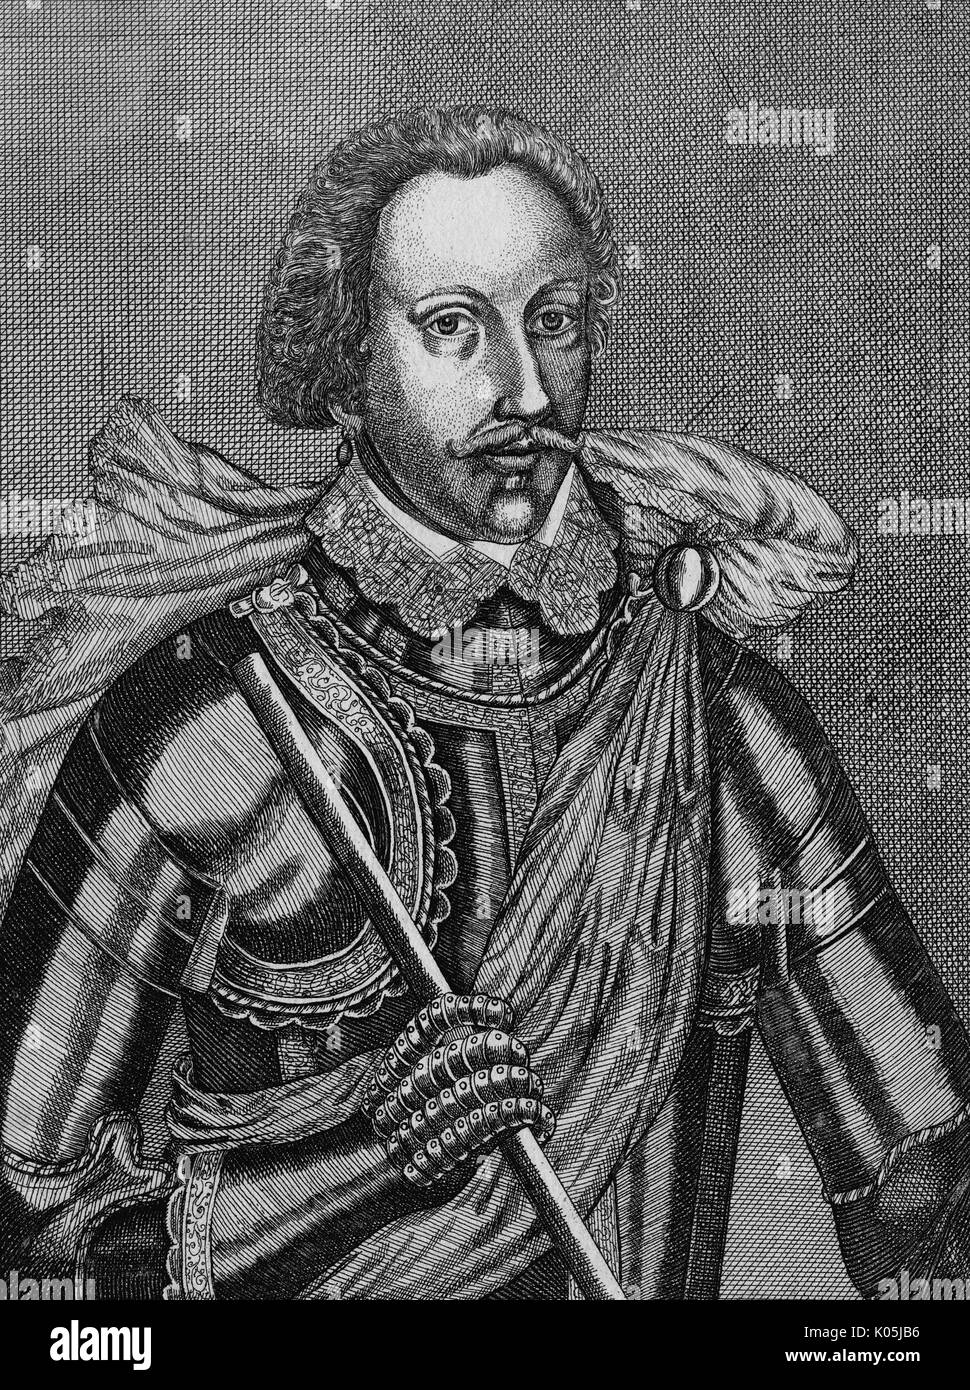 Sir Philip Sidney (1554 - 1586) - writer, soldier, courtier        Date: - Stock Image